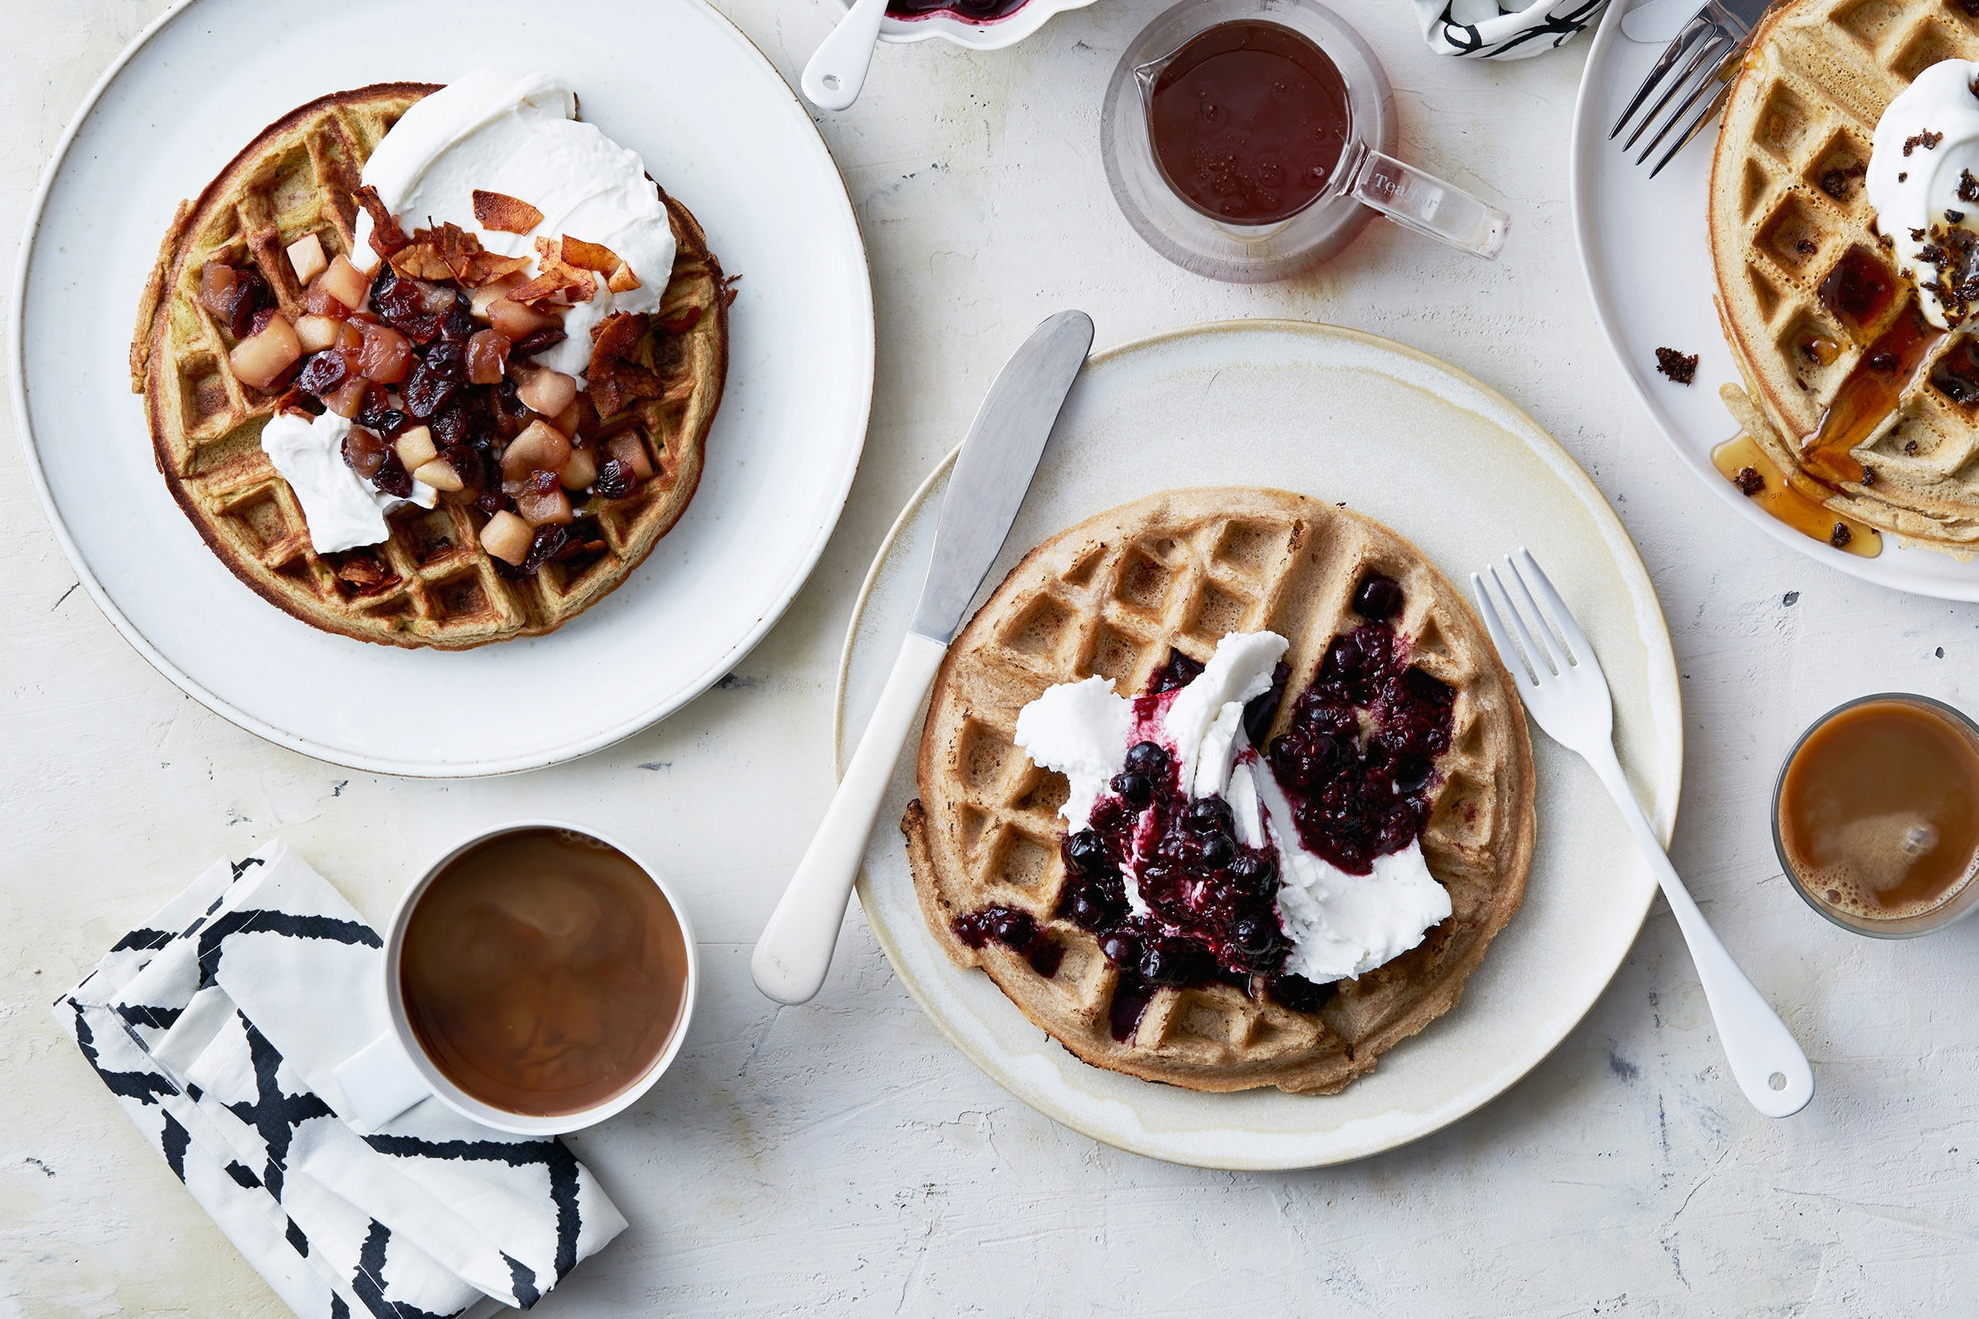 01-WEEKEND+RECHARGE_Chickpea_Brownrice_Quinoa_Waffles_1190.jpg